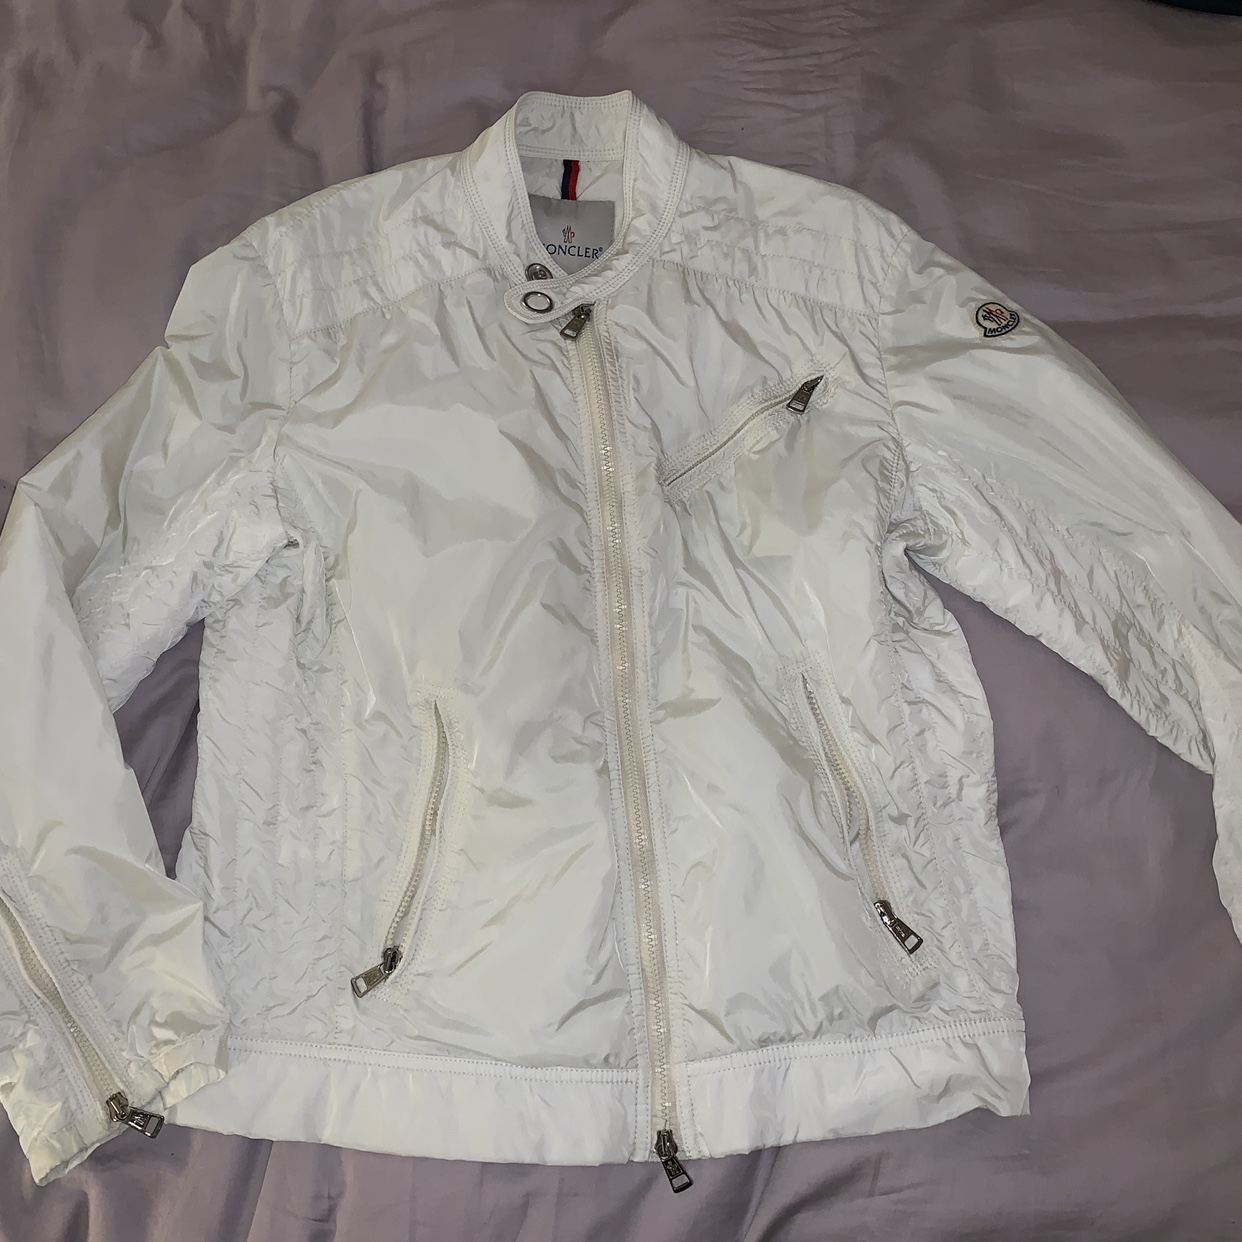 Lovely Moncler white spring summer jacket This was Depop